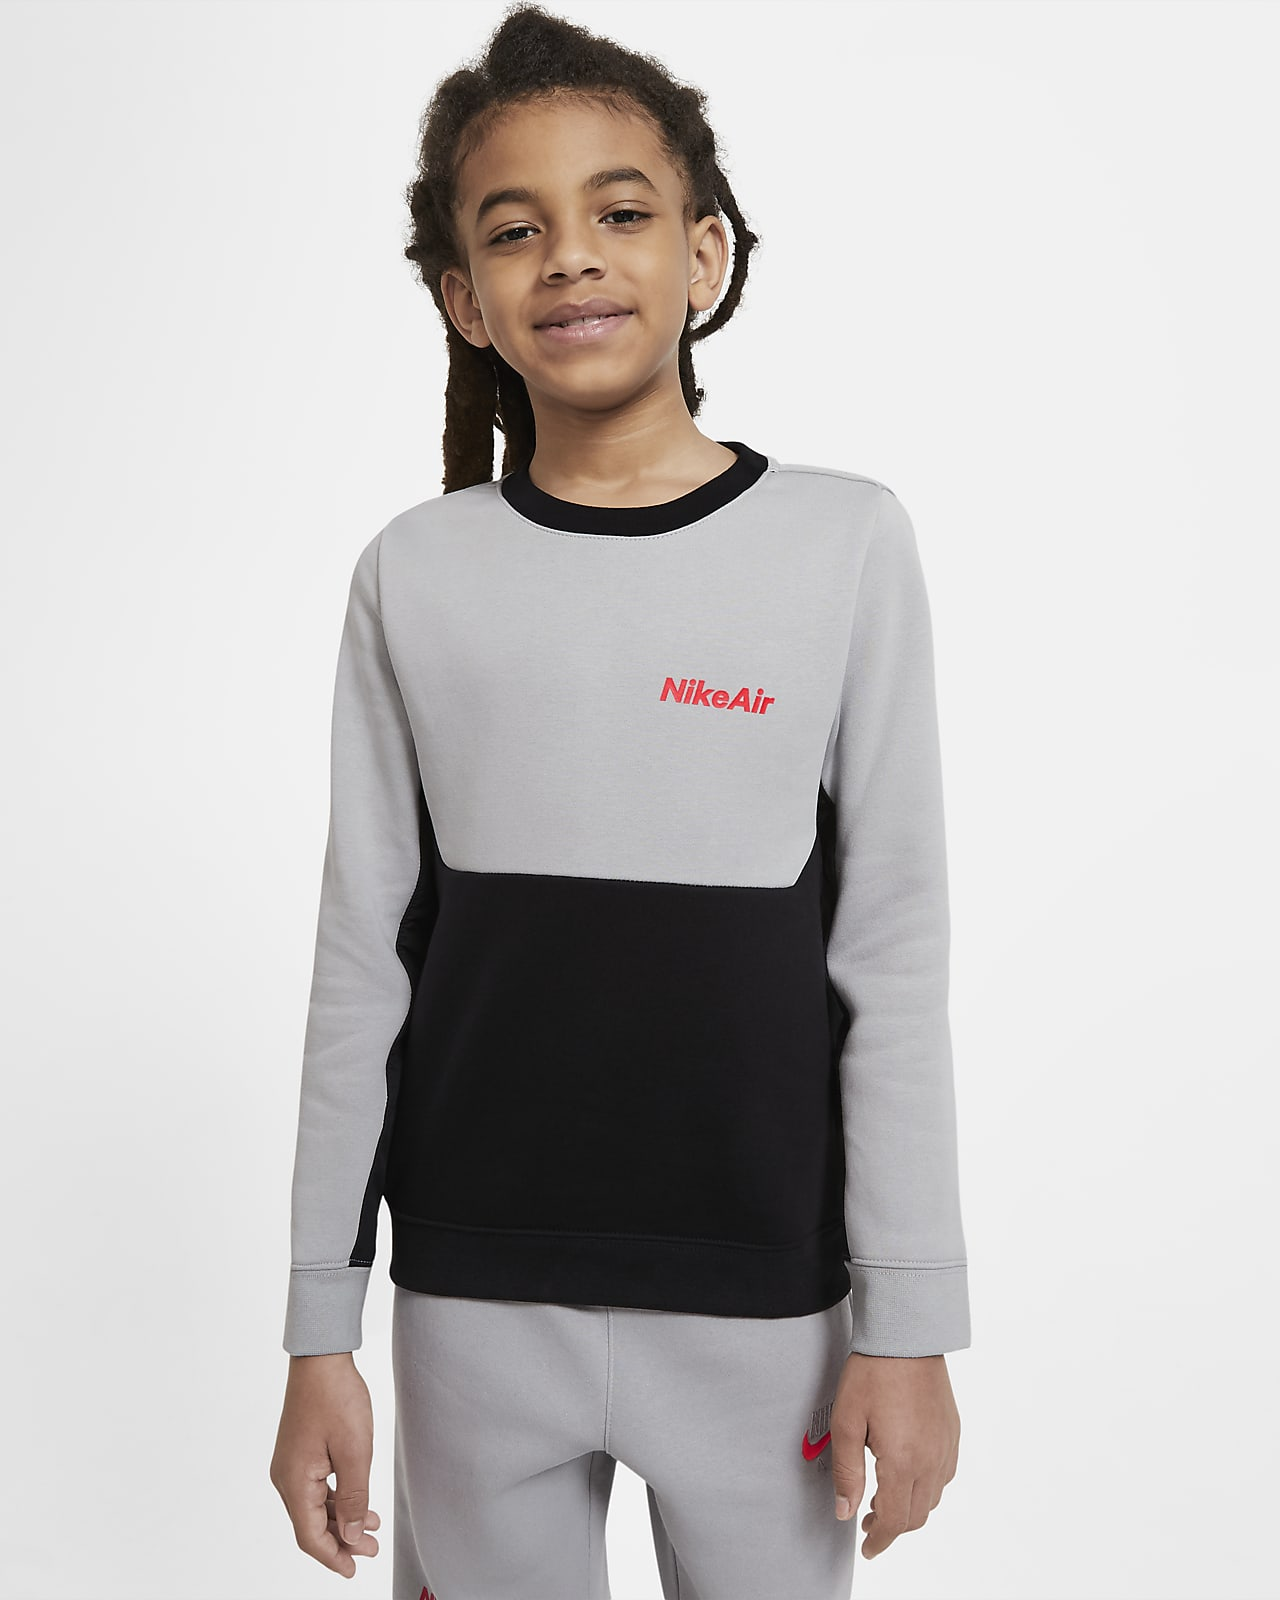 Nike Air Older Kids' (Boys') Long-Sleeve Crew